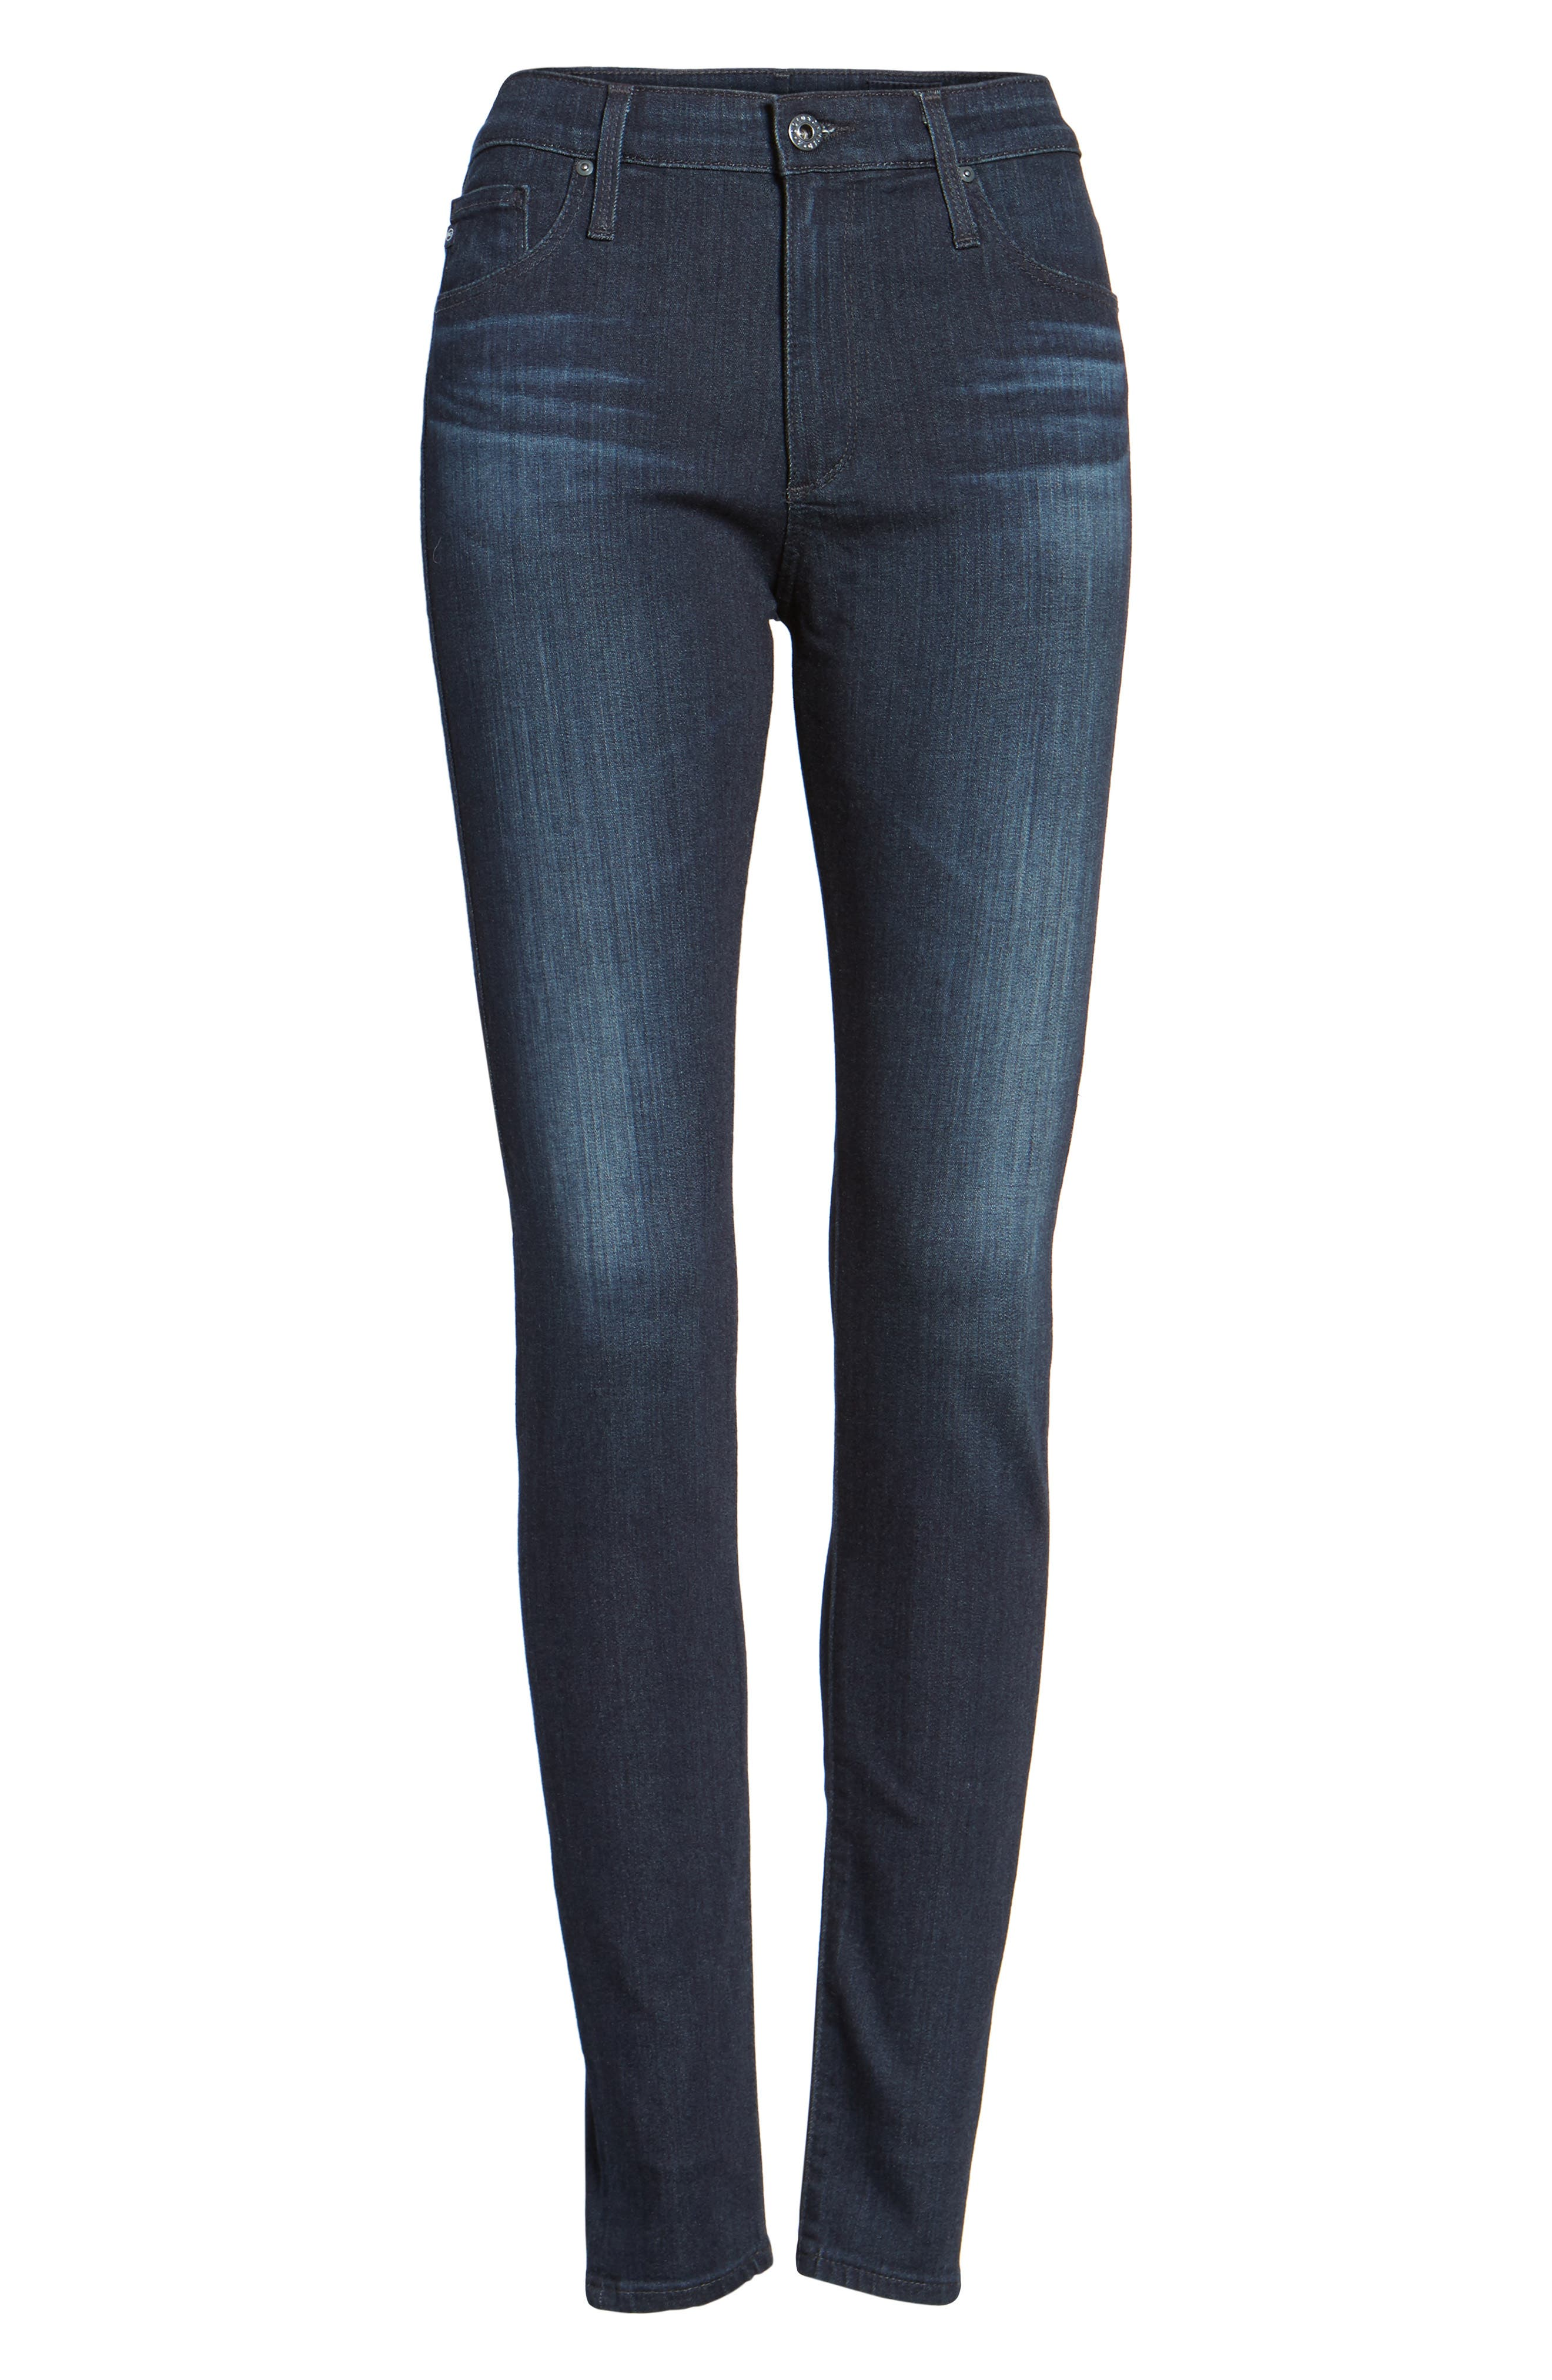 Women's AG The Farrah High Waist Skinny Jeans